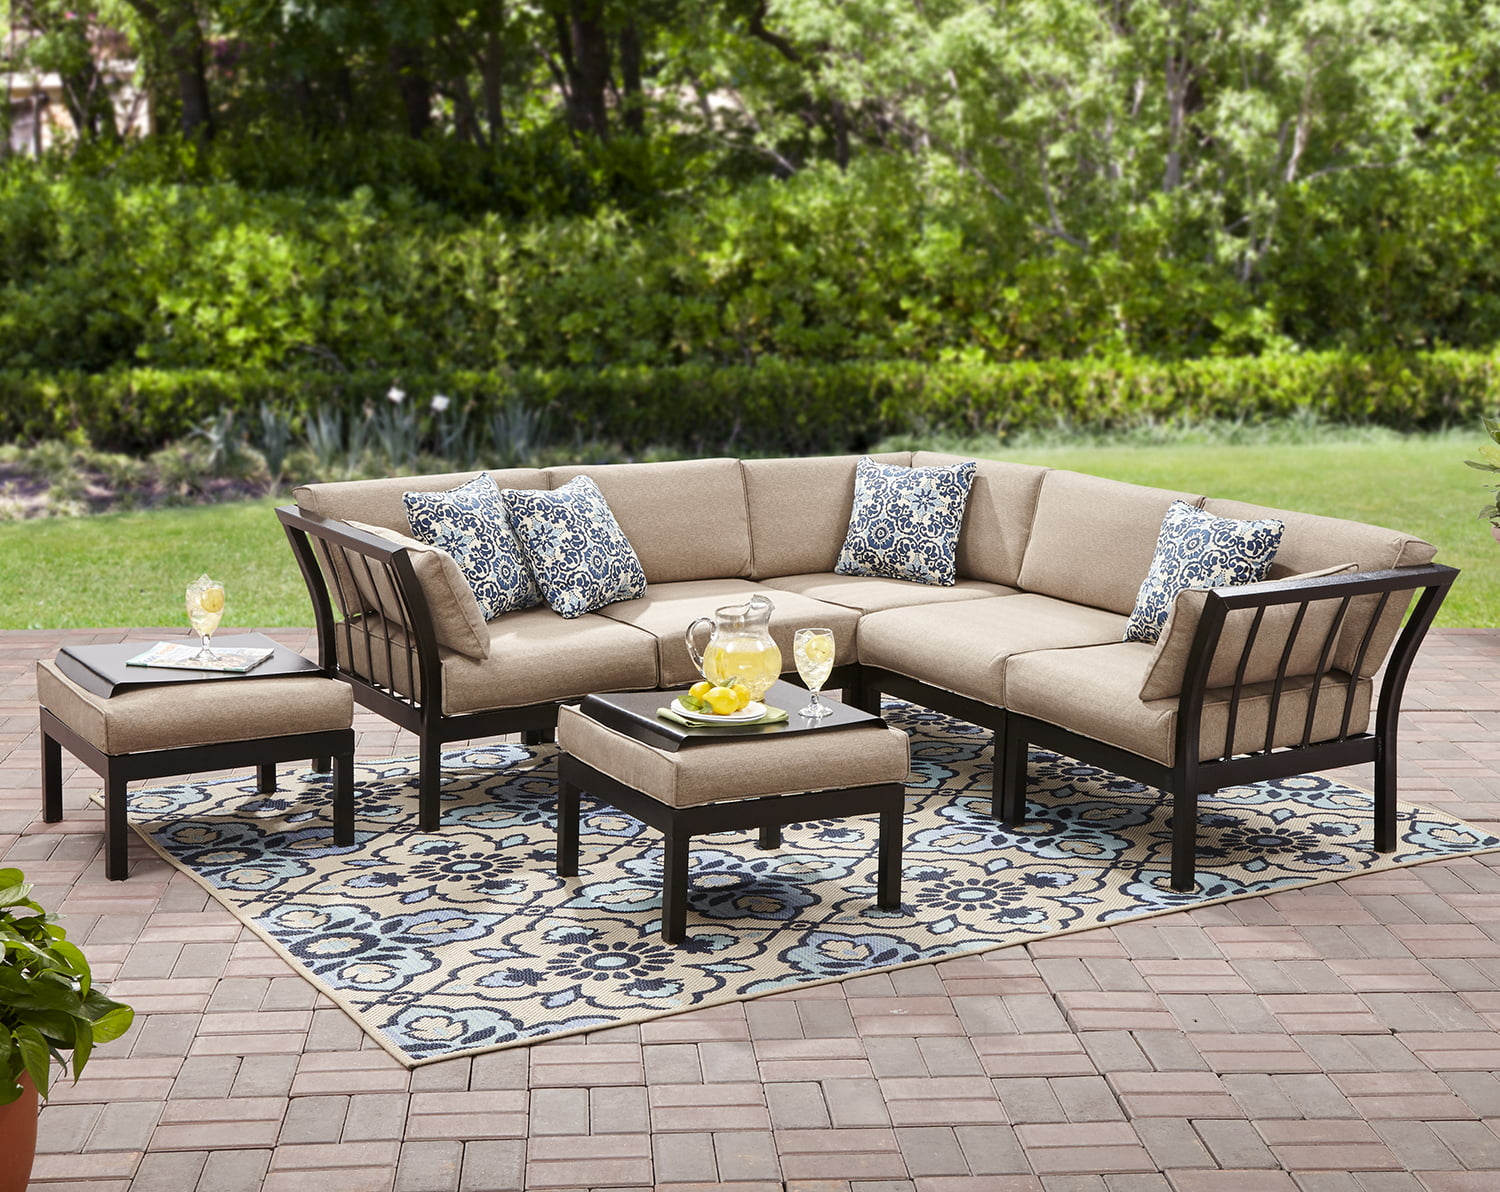 New Mainstays Ragan Meadow II Piece Outdoor Sectional Sofa Seats Walmart